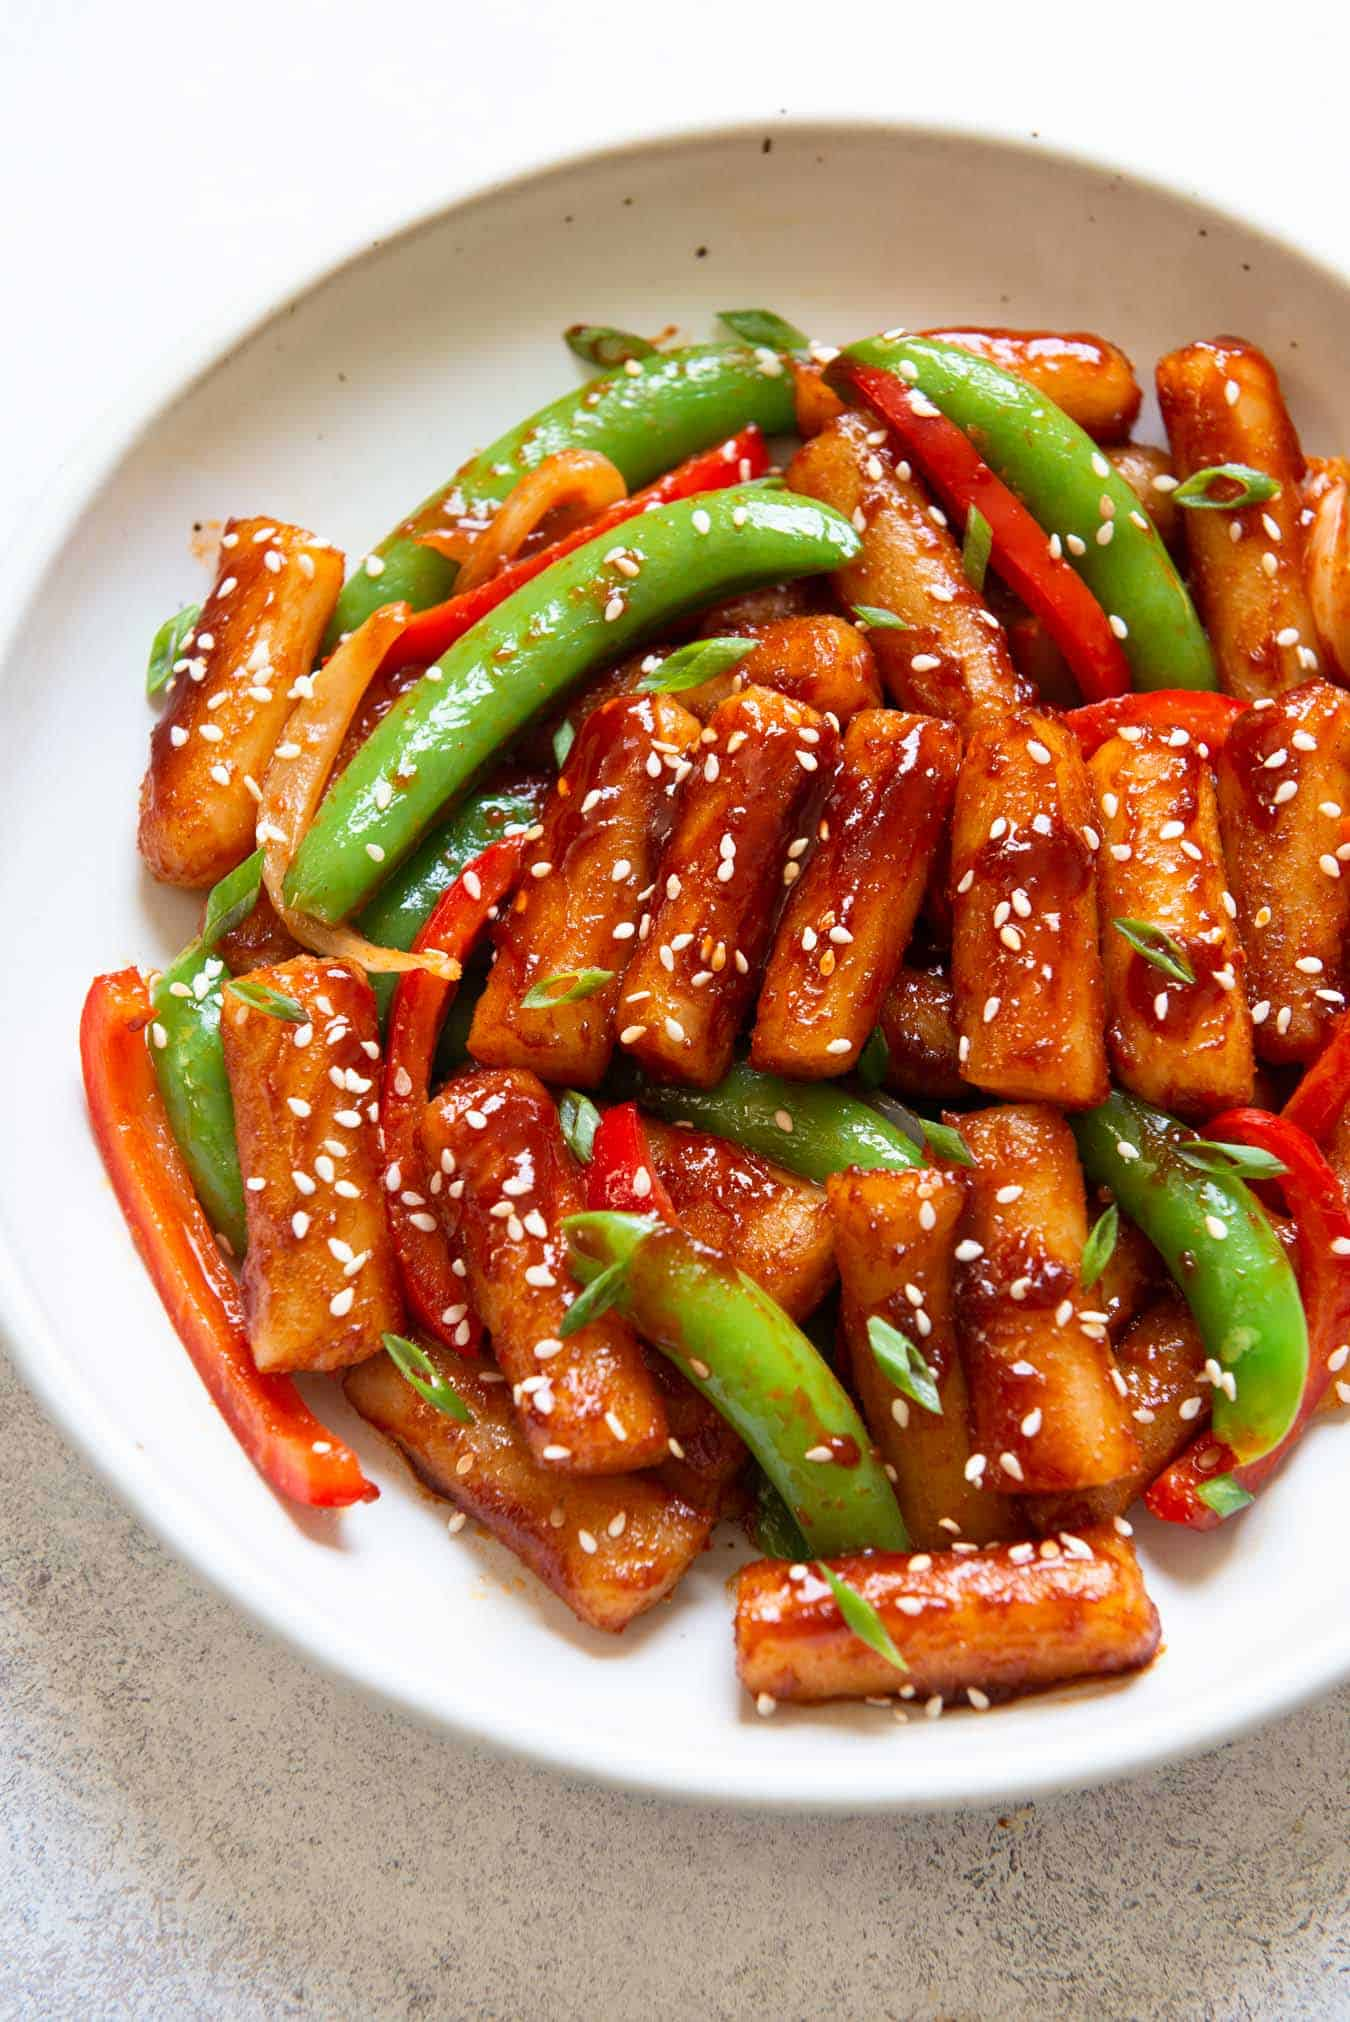 Stir Fried Spicy Rice Cakes